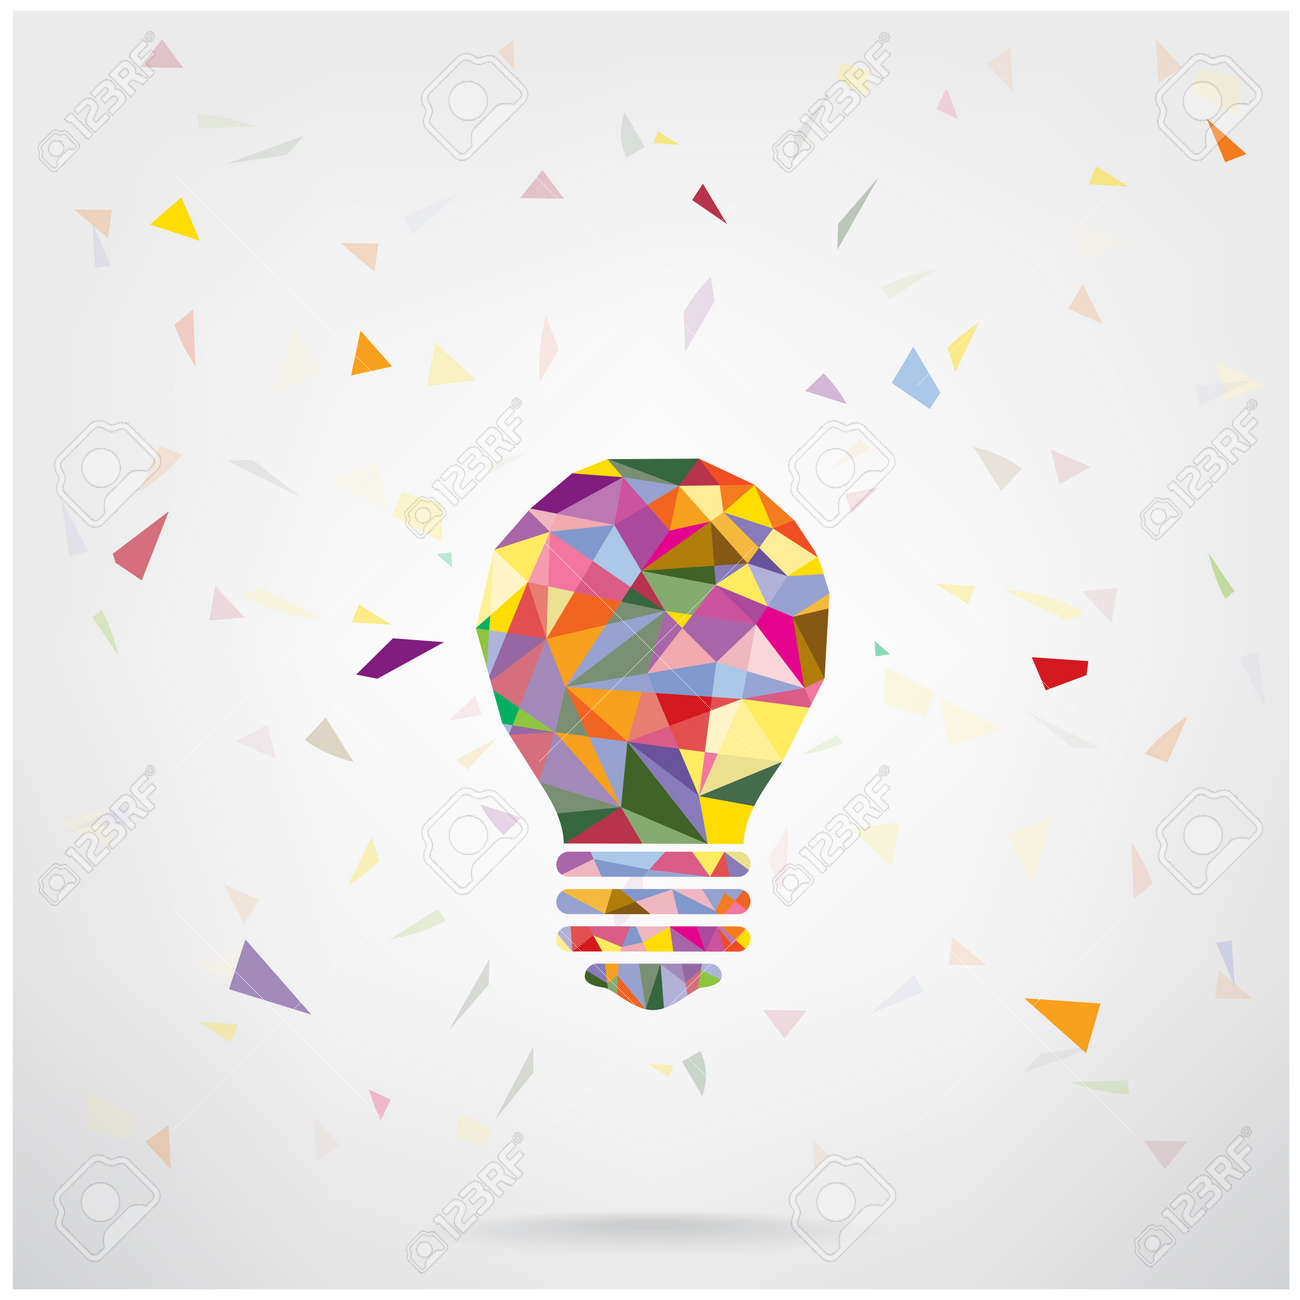 Idea Design distance view project by artsigns corp design jobs logo design interior designer design ideas interior designers Vector Creative Light Bulb Idea Concept Background Design For Poster Flyer Cover Brochure Business Idea Abstract Backgroundvector Illustration Contains